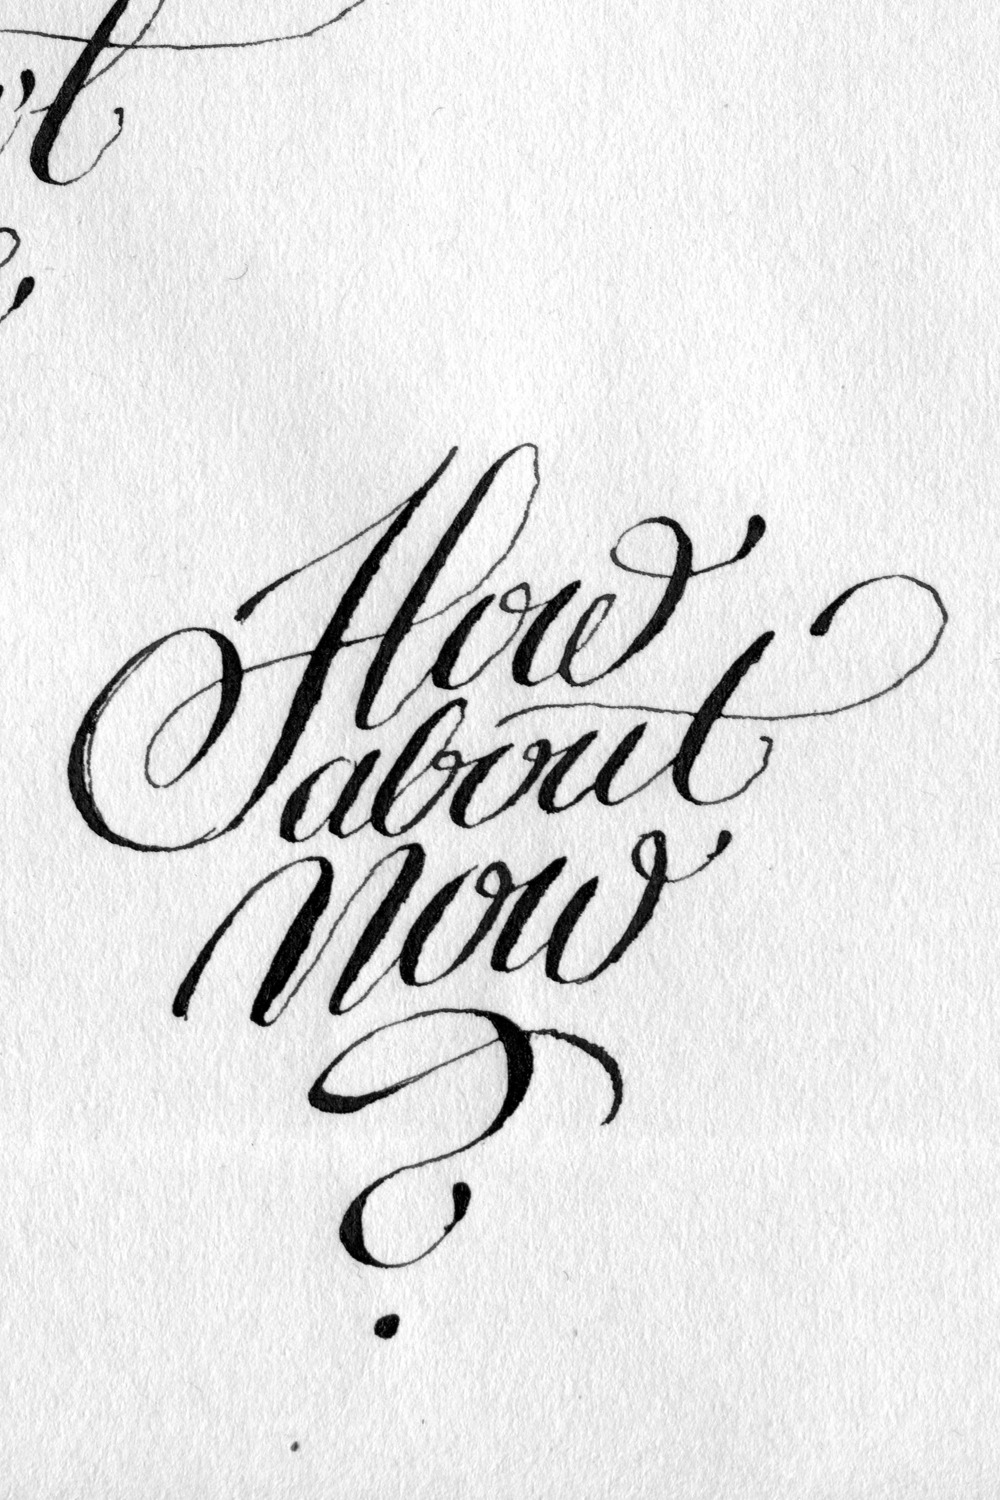 calligraphica:   Calligraphi.ca - how about now? - copperplate nib and ink on paper - Theosone